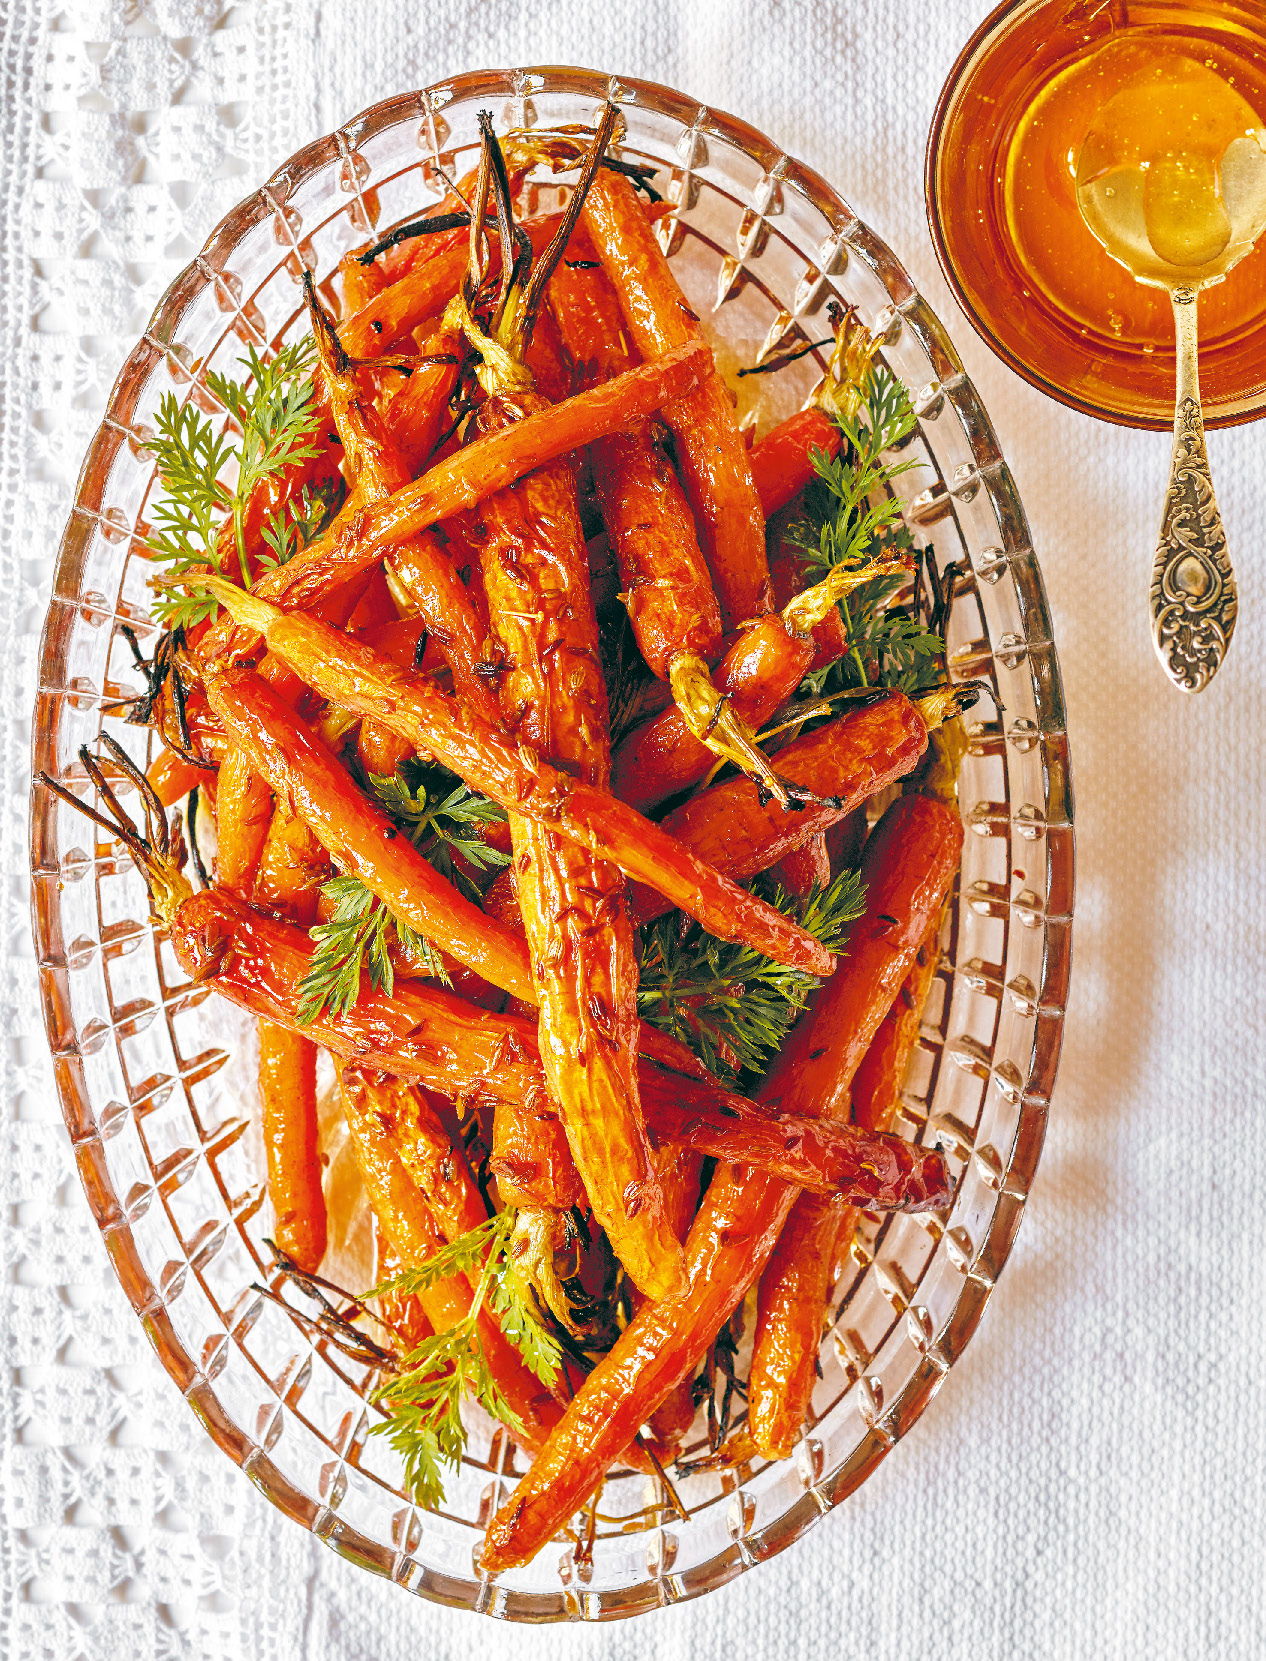 Roasted Dutch carrots with honey and cumin